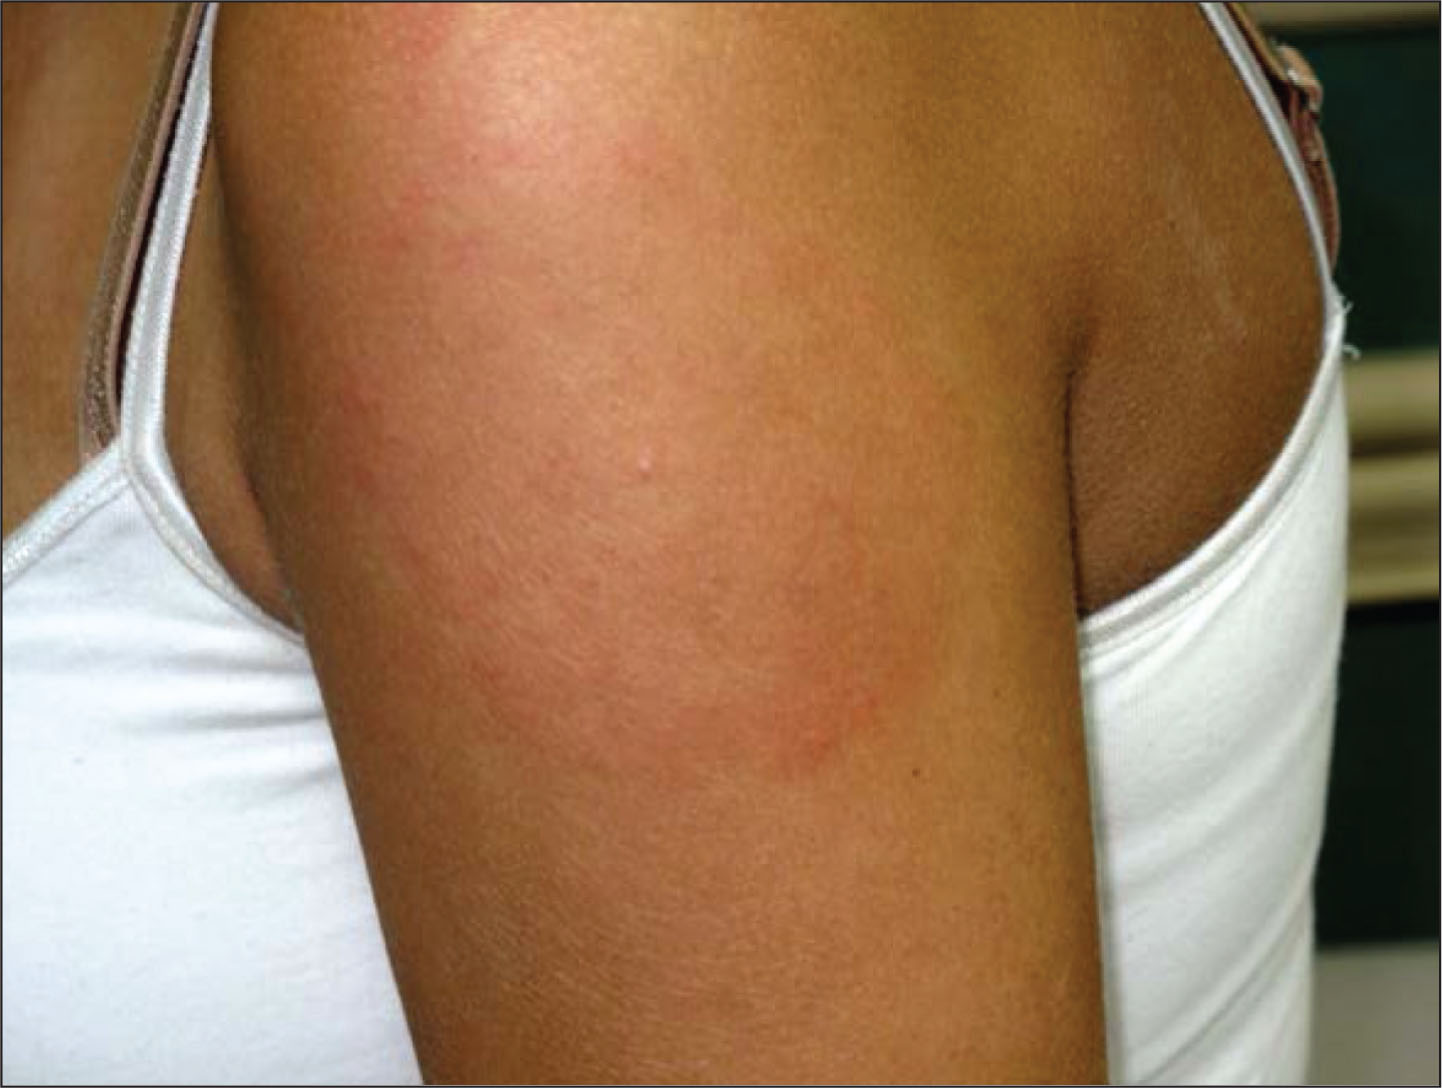 A rapidly spreading 10-cm, concentric, nonpruritic, round rash with raised maculopapular rash border, clearing around the punctum in a white, 16-year-old girl. The patient sustained a tick bite 12 days earlier. Despite amoxicillin therapy, the rash enlarged and the patient developed some systemic symptoms and arthralgias.